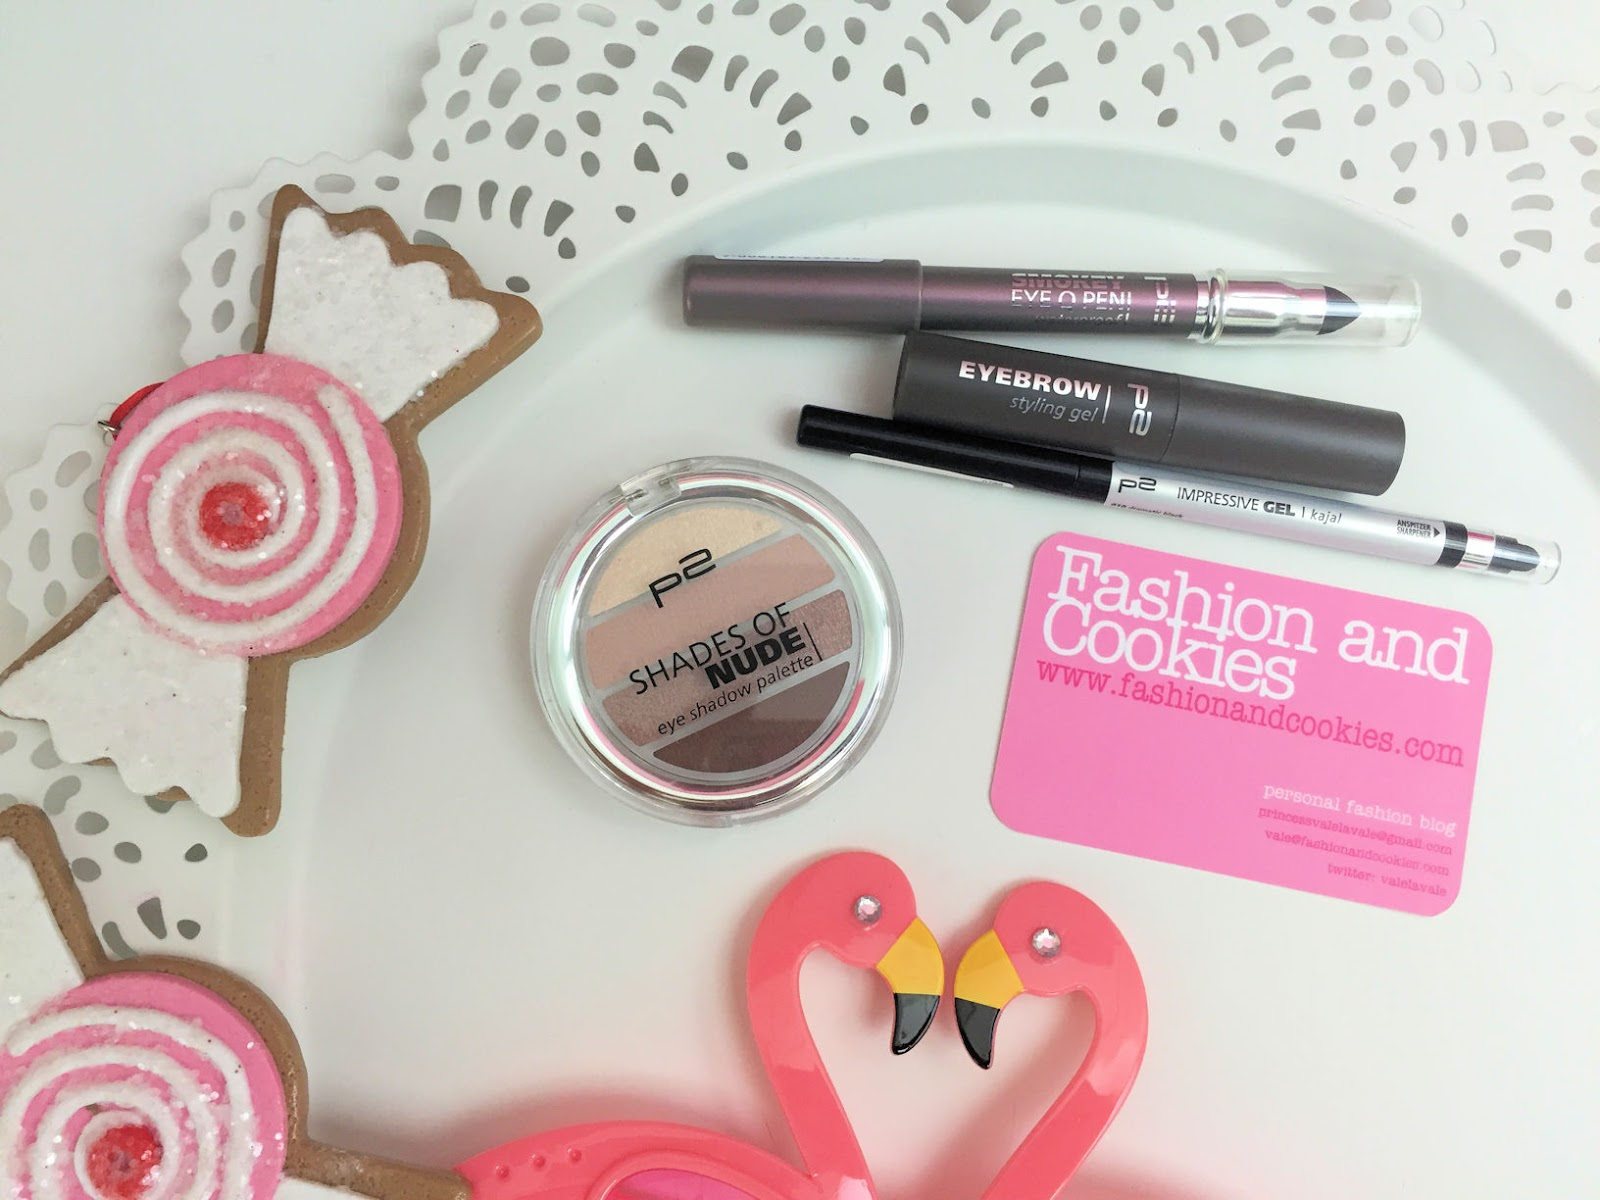 p2 Cosmetics makeup low cost review palette ombretti shades of nude Fashion and Cookies beauty blog, beauty blogger